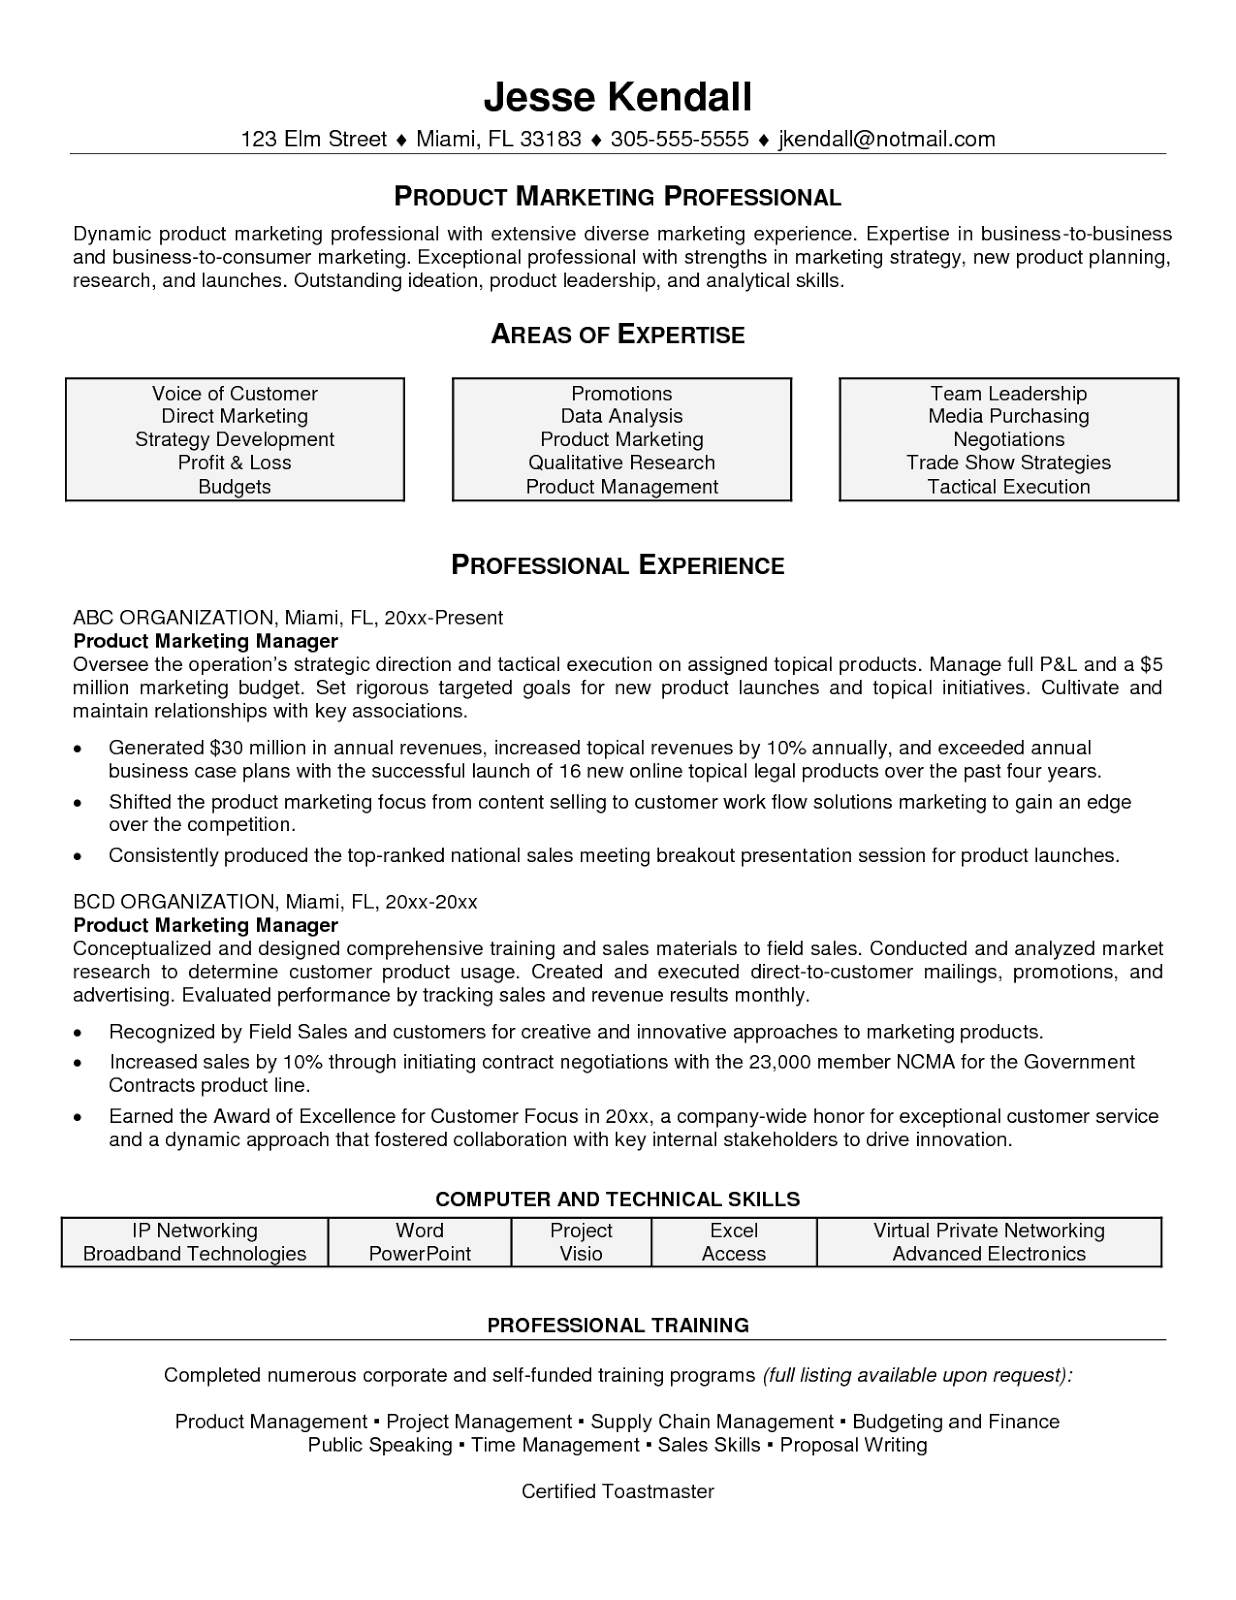 Online Marketing Manager Resume,Online Marketing Manager Resume ...